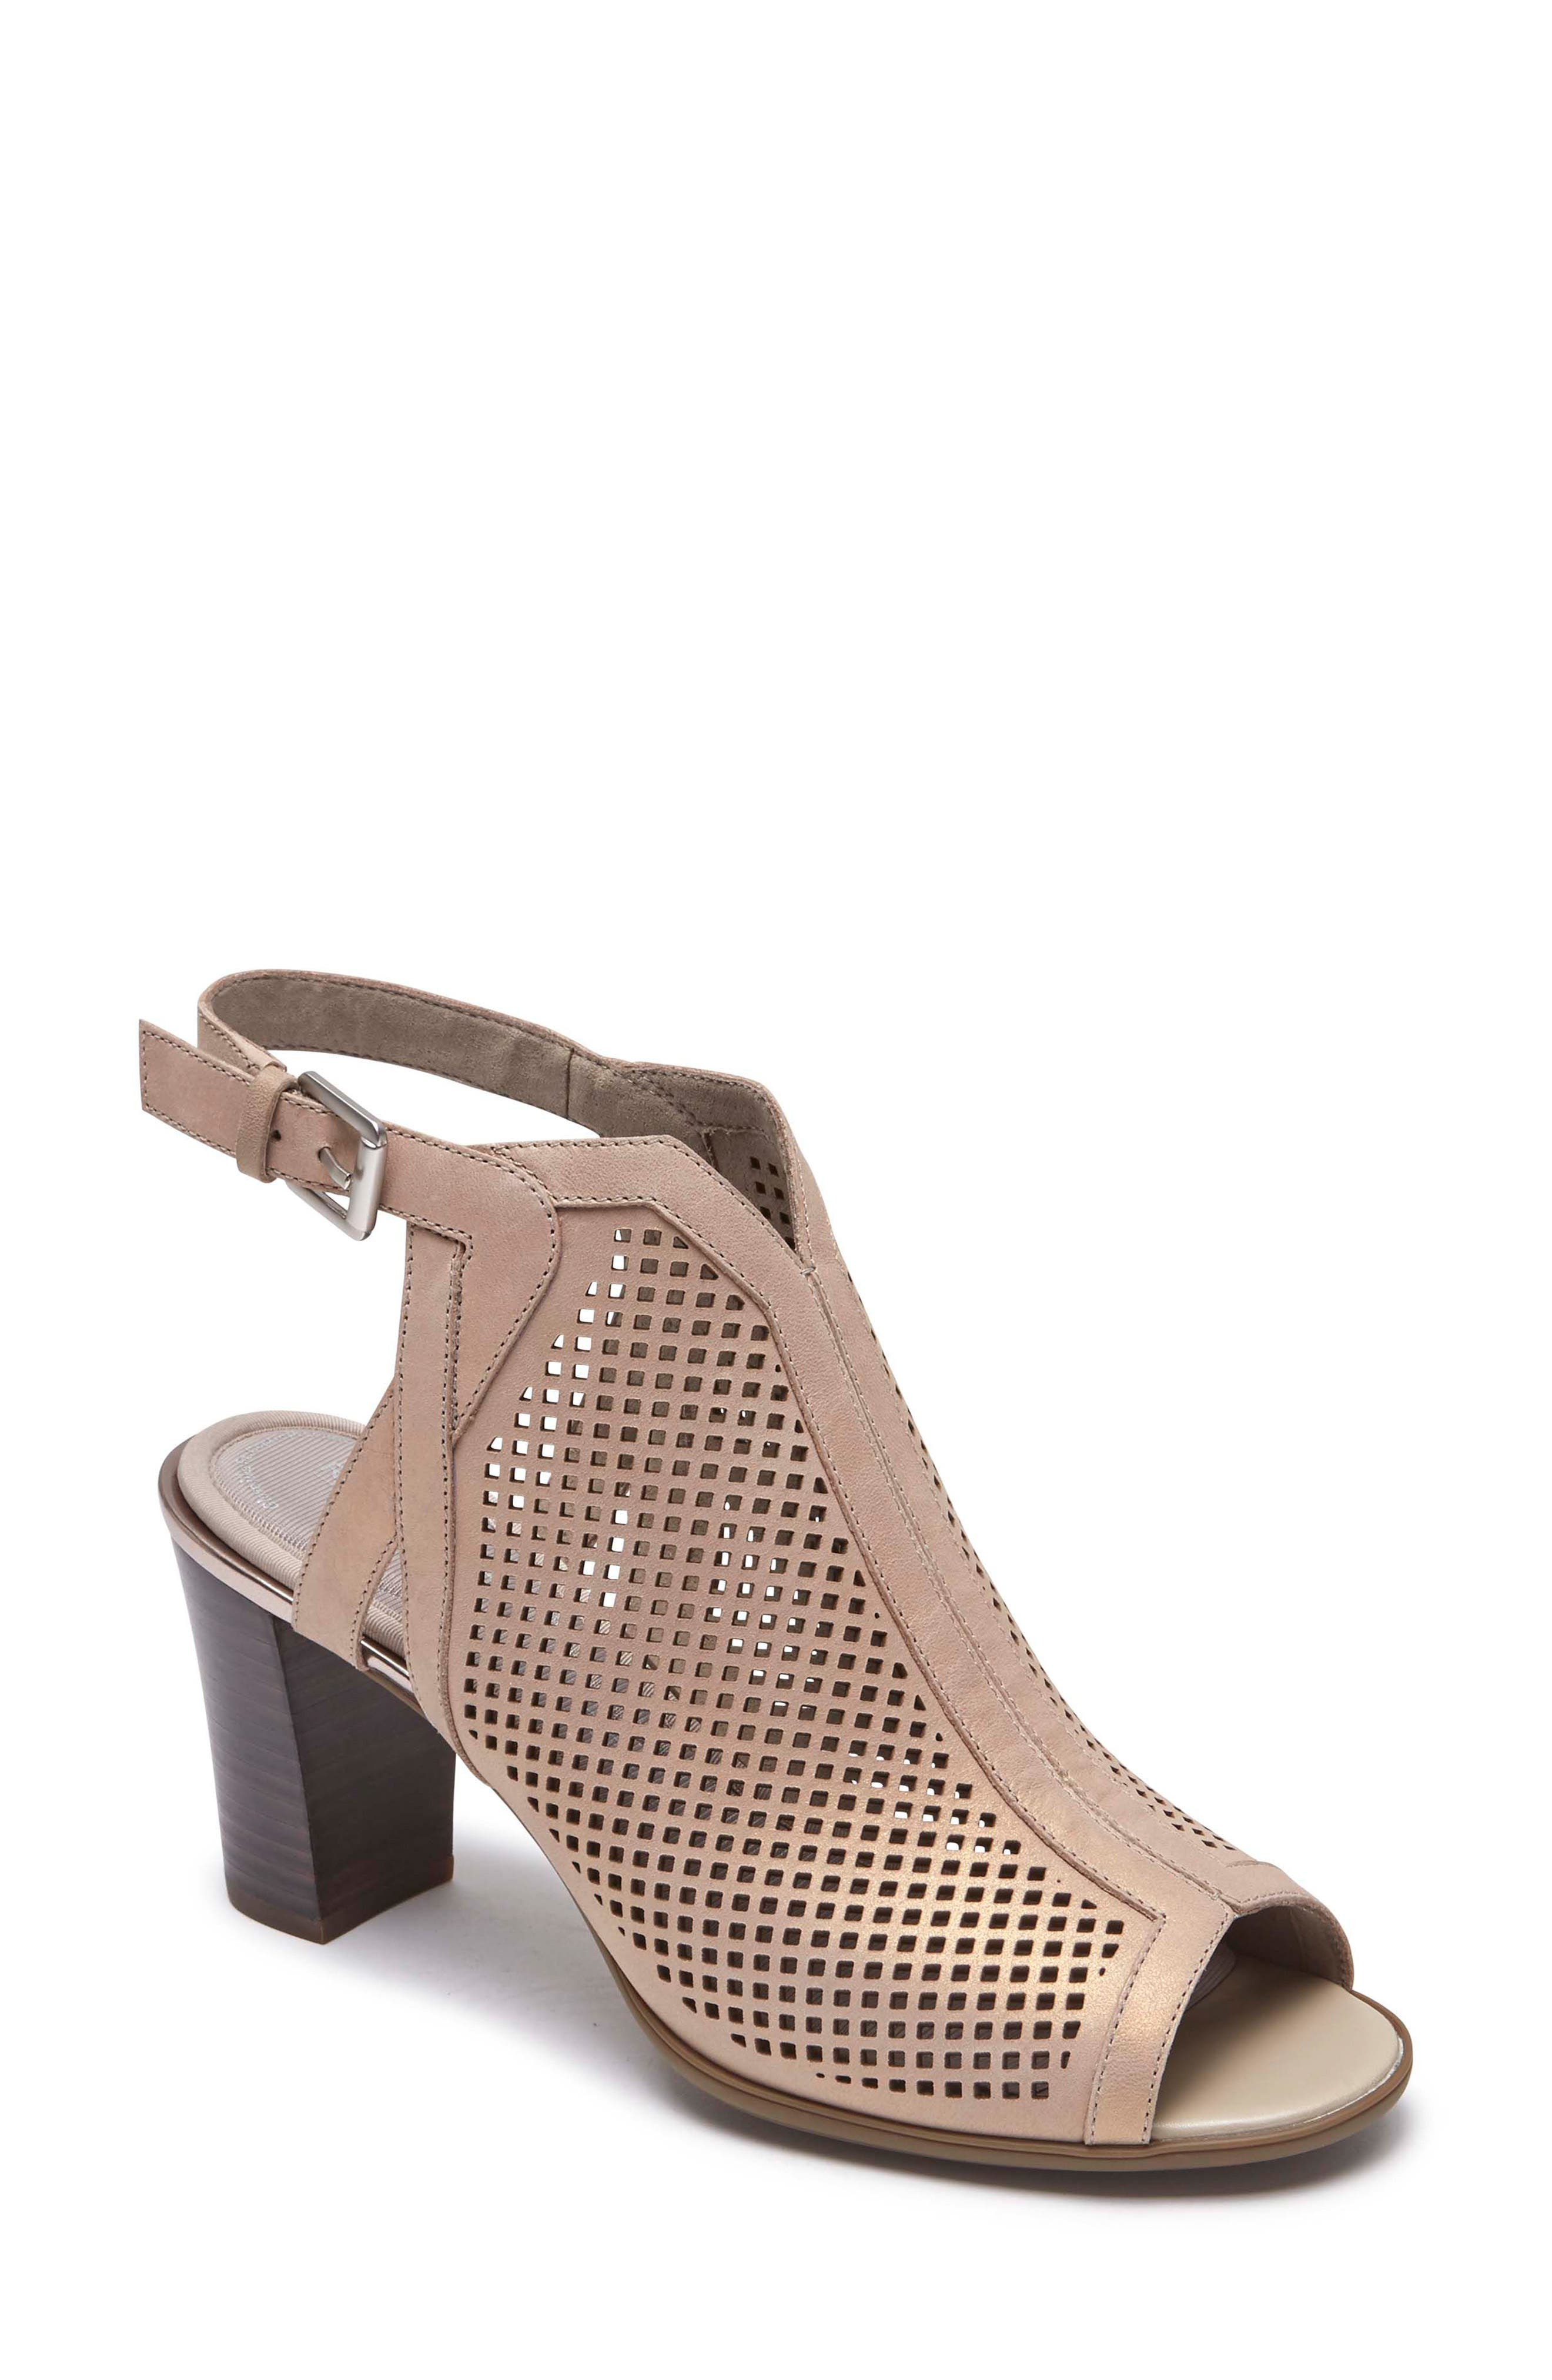 Total Motion Luxe Perforated Sandal,                             Main thumbnail 1, color,                             Dove Leather